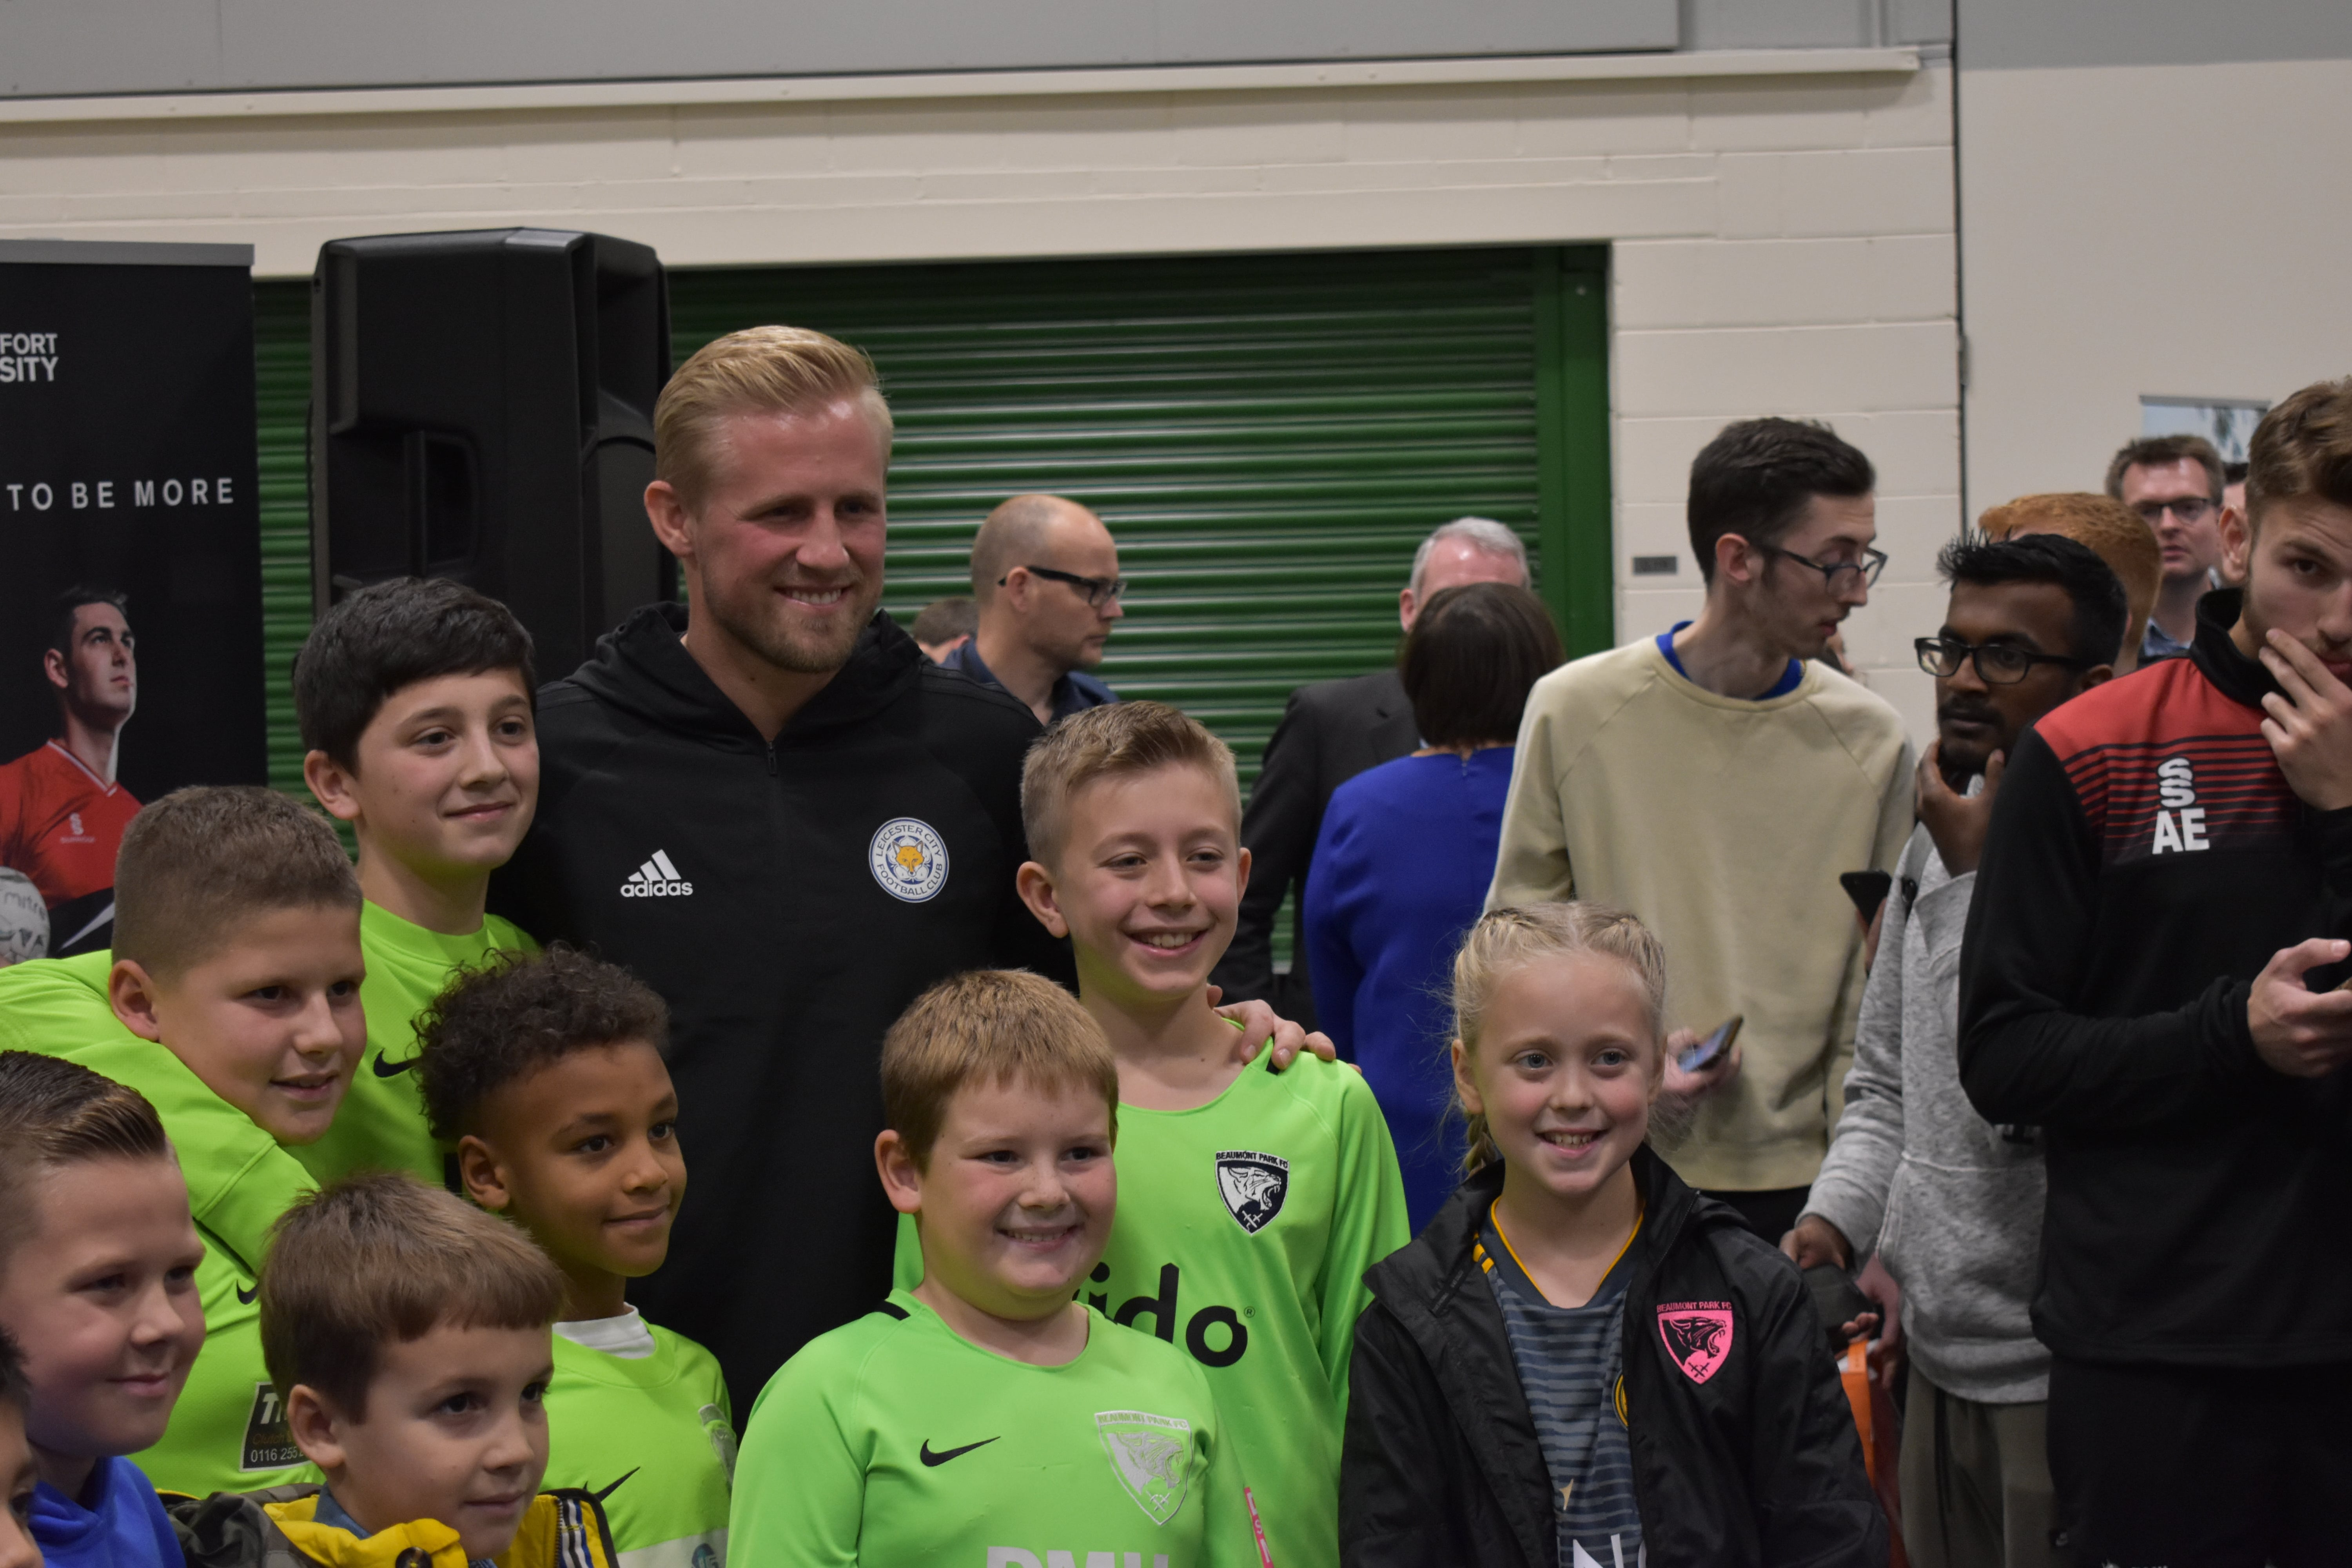 Leicester City's Kasper Schmeichel opens DMU's Watershed building